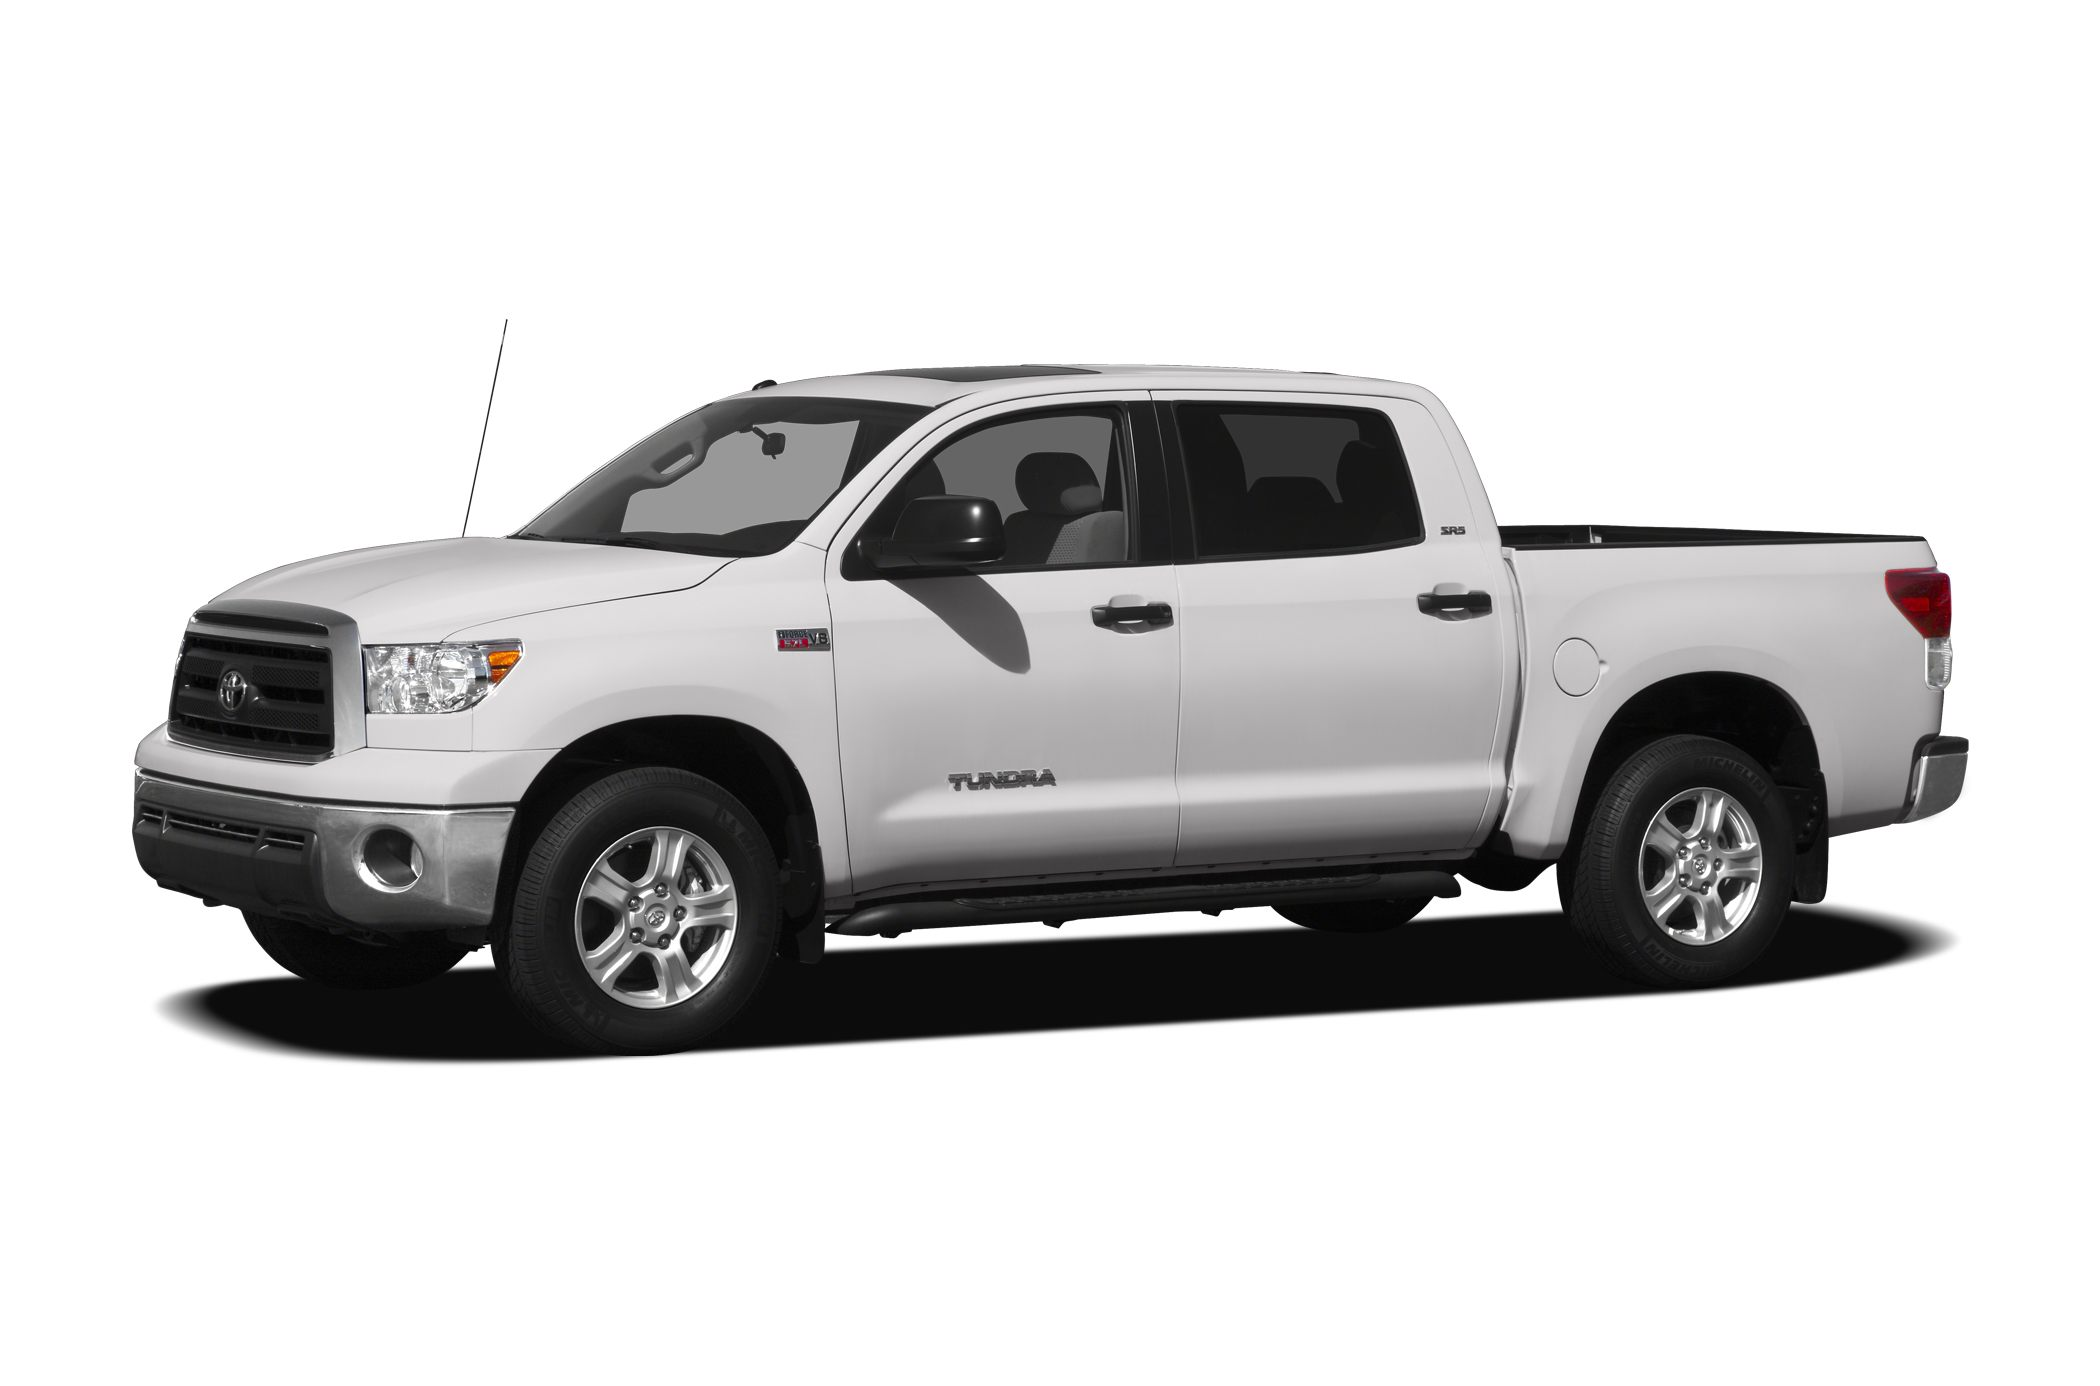 2012 Toyota Tundra Grade CARFAX 1-Owner 1600 below Kelley Blue Book Navigation 4x4 Trailer H